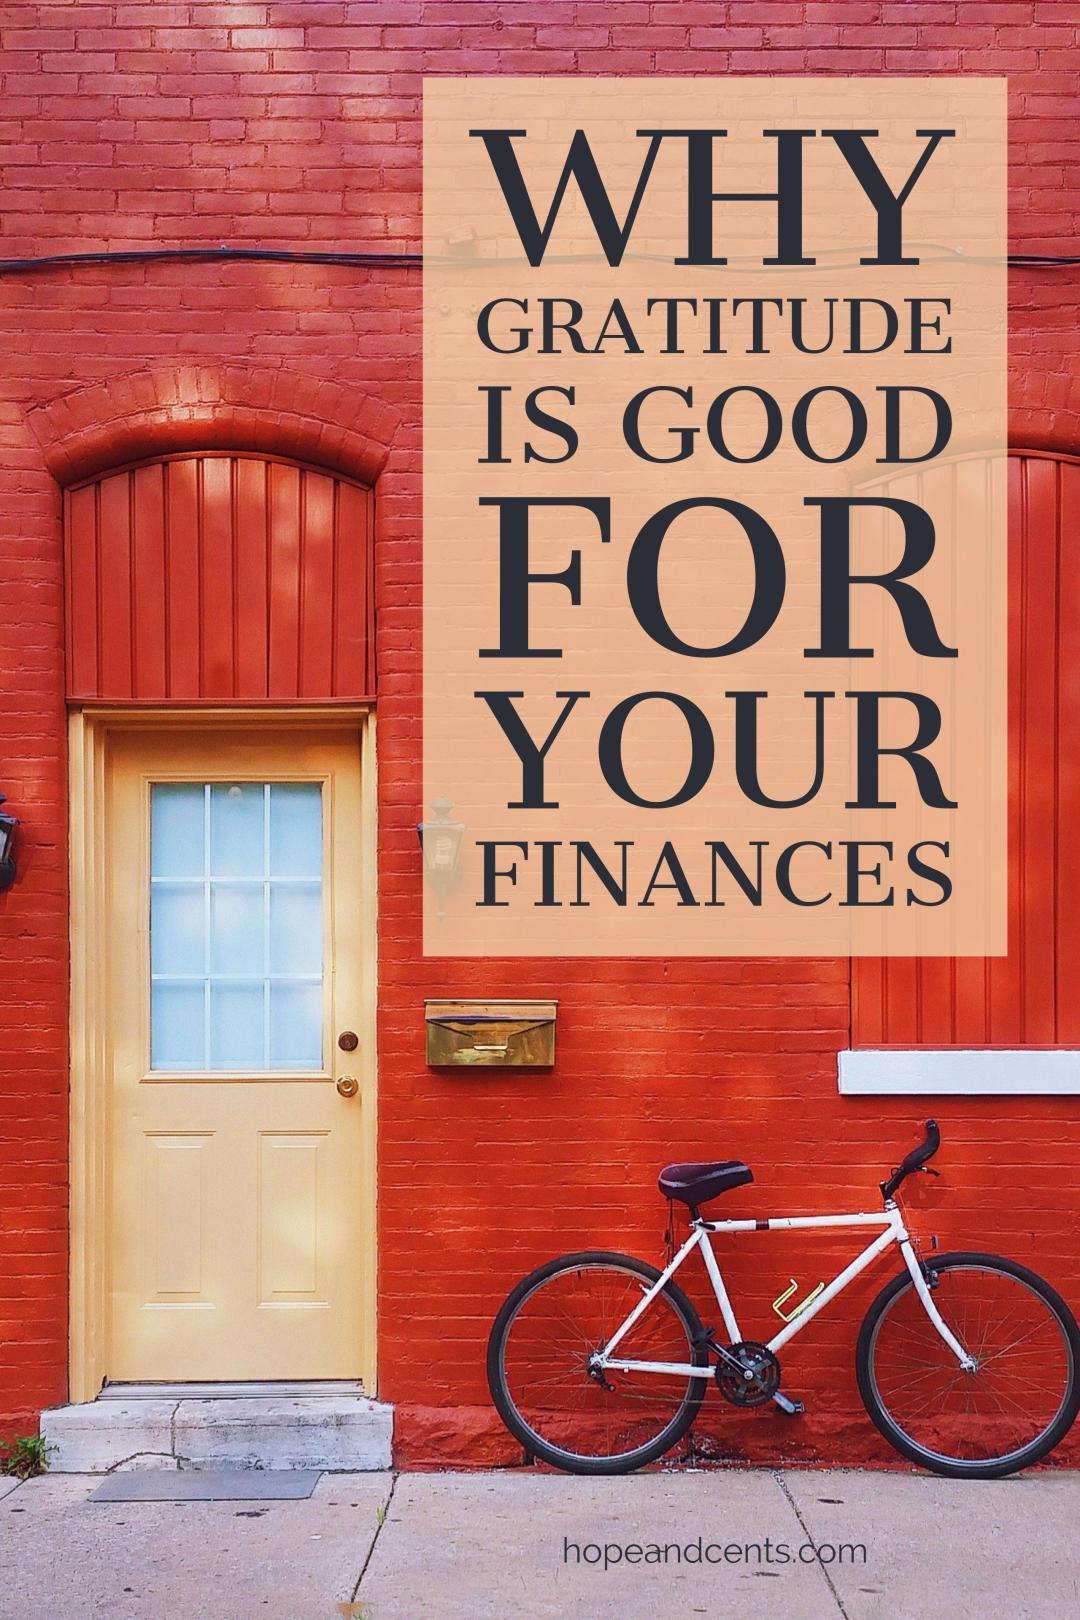 Do you spend a lot of time wishing your finances were better? Maybe it\'s time to shift your focus. Discover how gratitude can improve your finances.